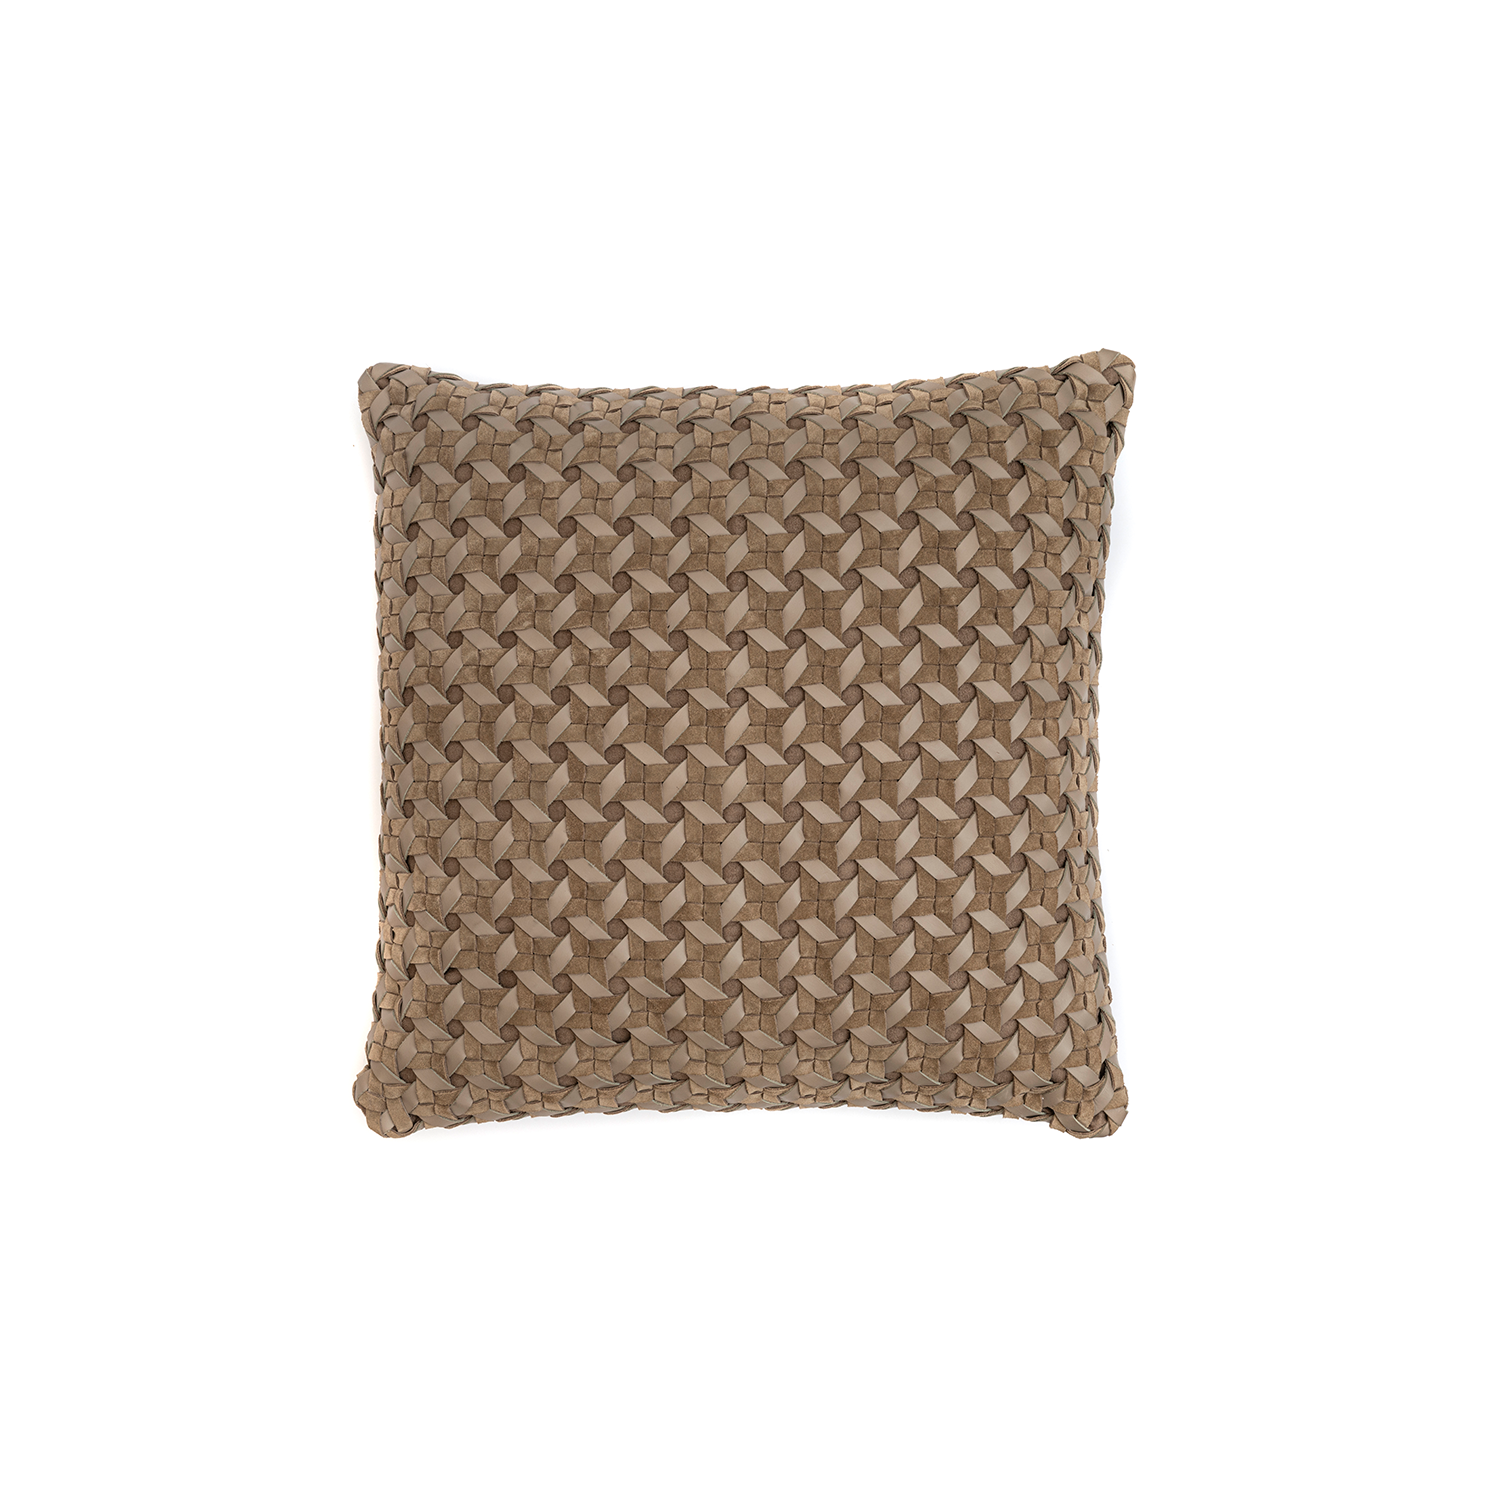 Maxi Catavento Woven Leather Cushion Square - The Maxi Catavento Woven Leather Cushion is designed to complement an ambient with a natural and sophisticated feeling. This cushion style is available in pleated leather or pleated suede leather. Elisa Atheniense woven handmade leather cushions are specially manufactured in Brazil using an exclusive treated leather that brings the soft feel touch to every single piece.   The front panel is handwoven in leather and the back panel is 100% Pes, made in Brazil.  The inner cushion is available in Hollow Fibre and European Duck Feathers, made in the UK.  Please enquire for more information and see colour chart for reference.   | Matter of Stuff